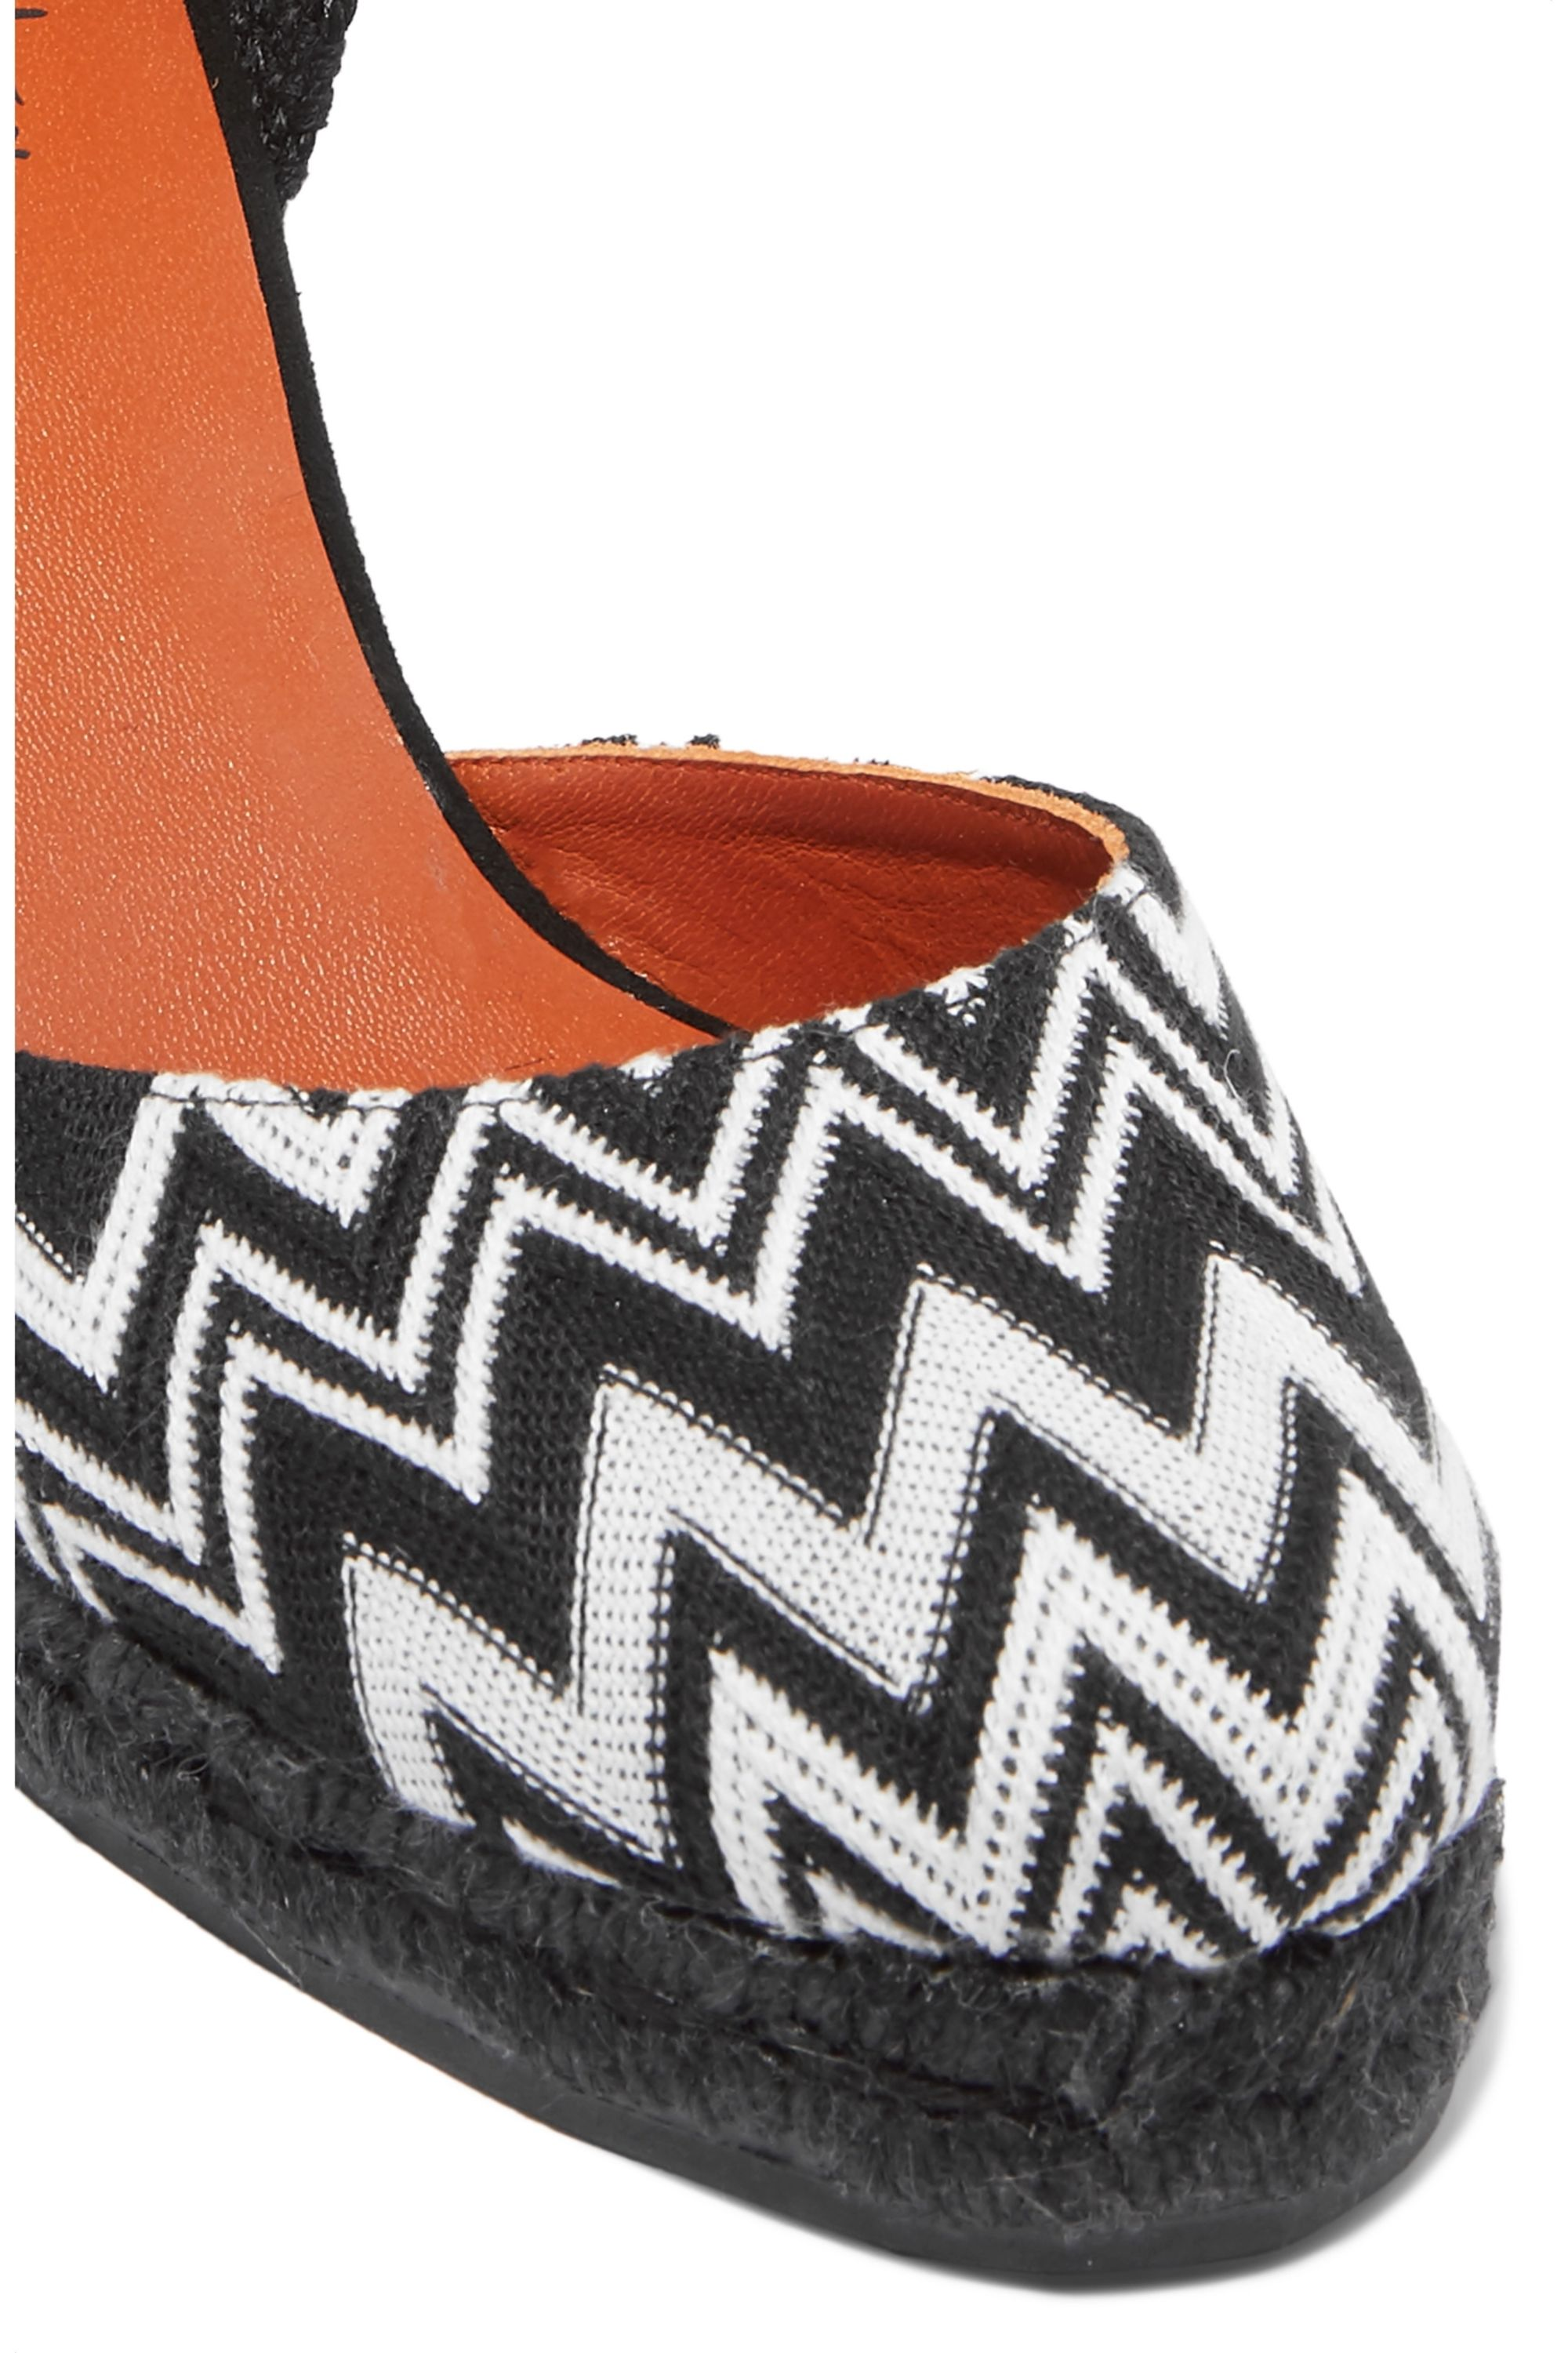 Castañer + Missoni Carina 80 crocheted canvas wedge espadrilles